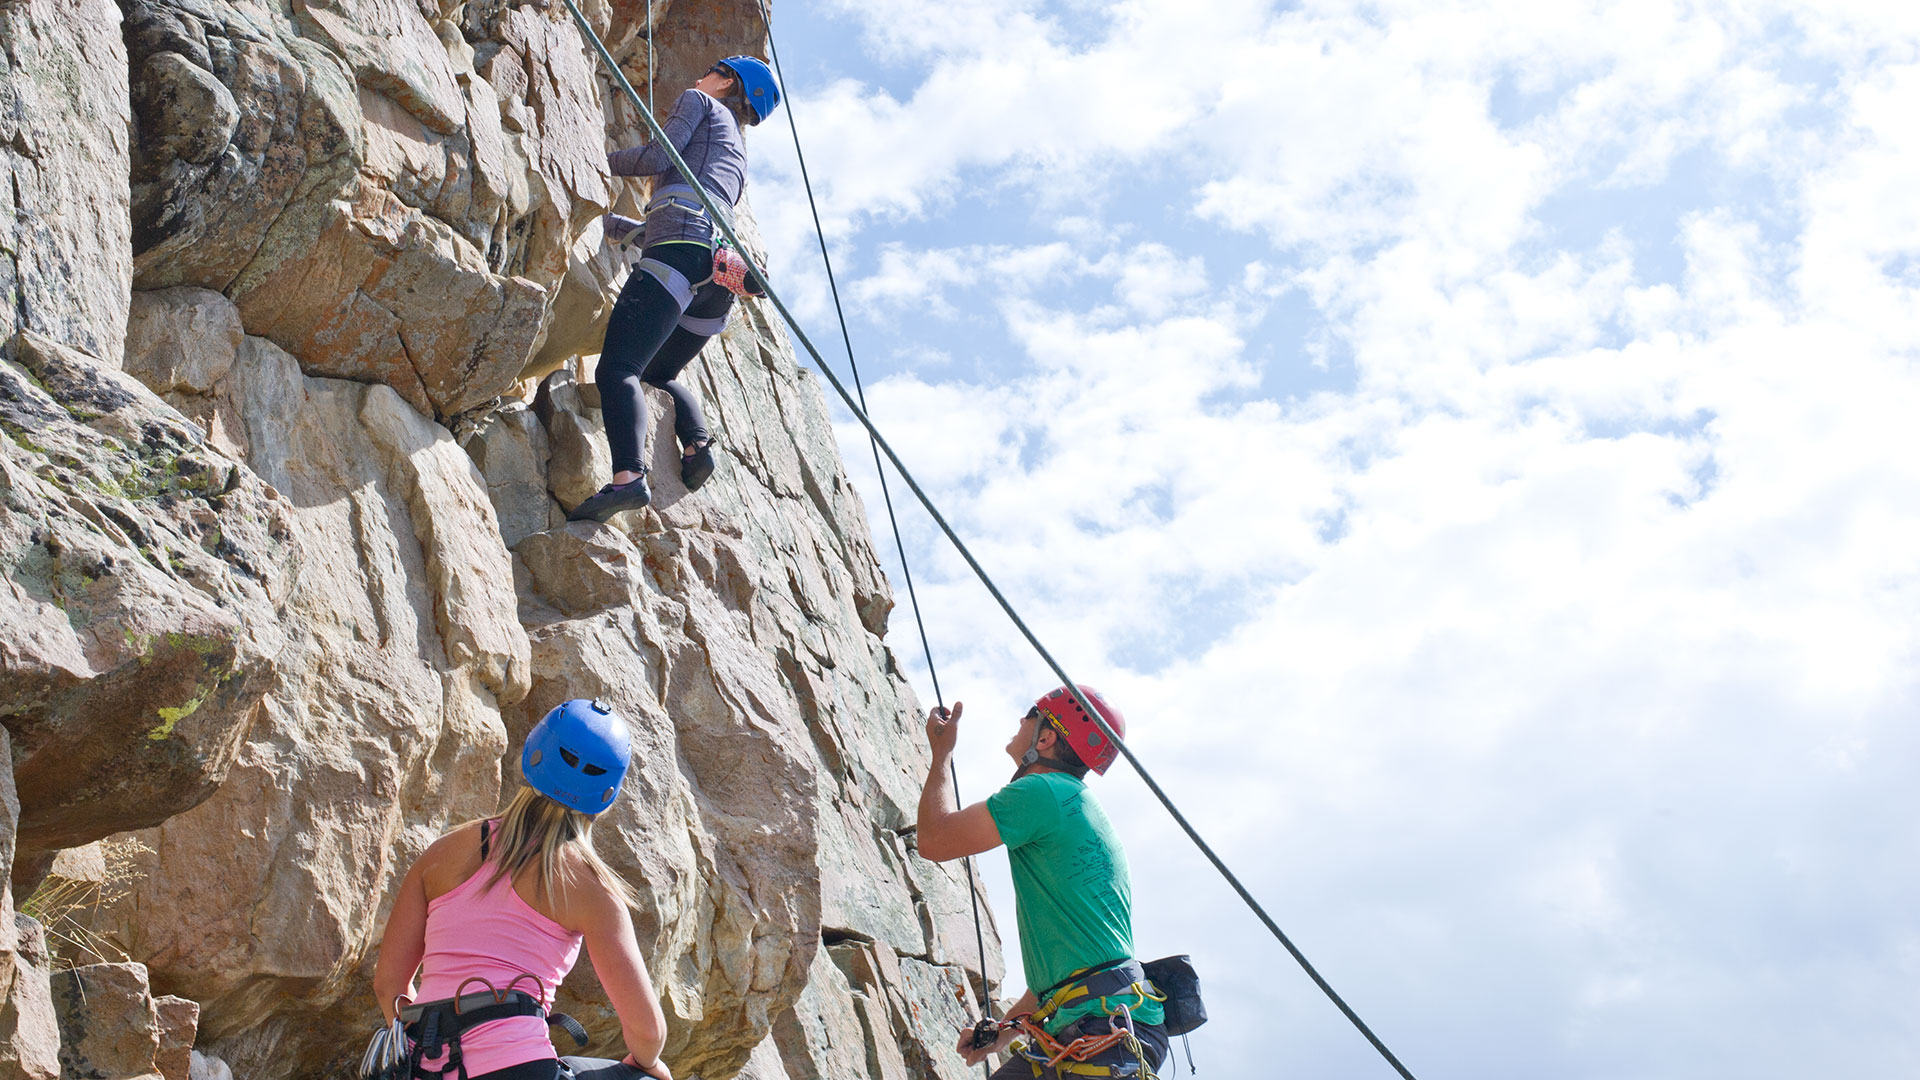 Guided Wilderness Rock Climbing Tour from White Pine Touring in Park City, UT.